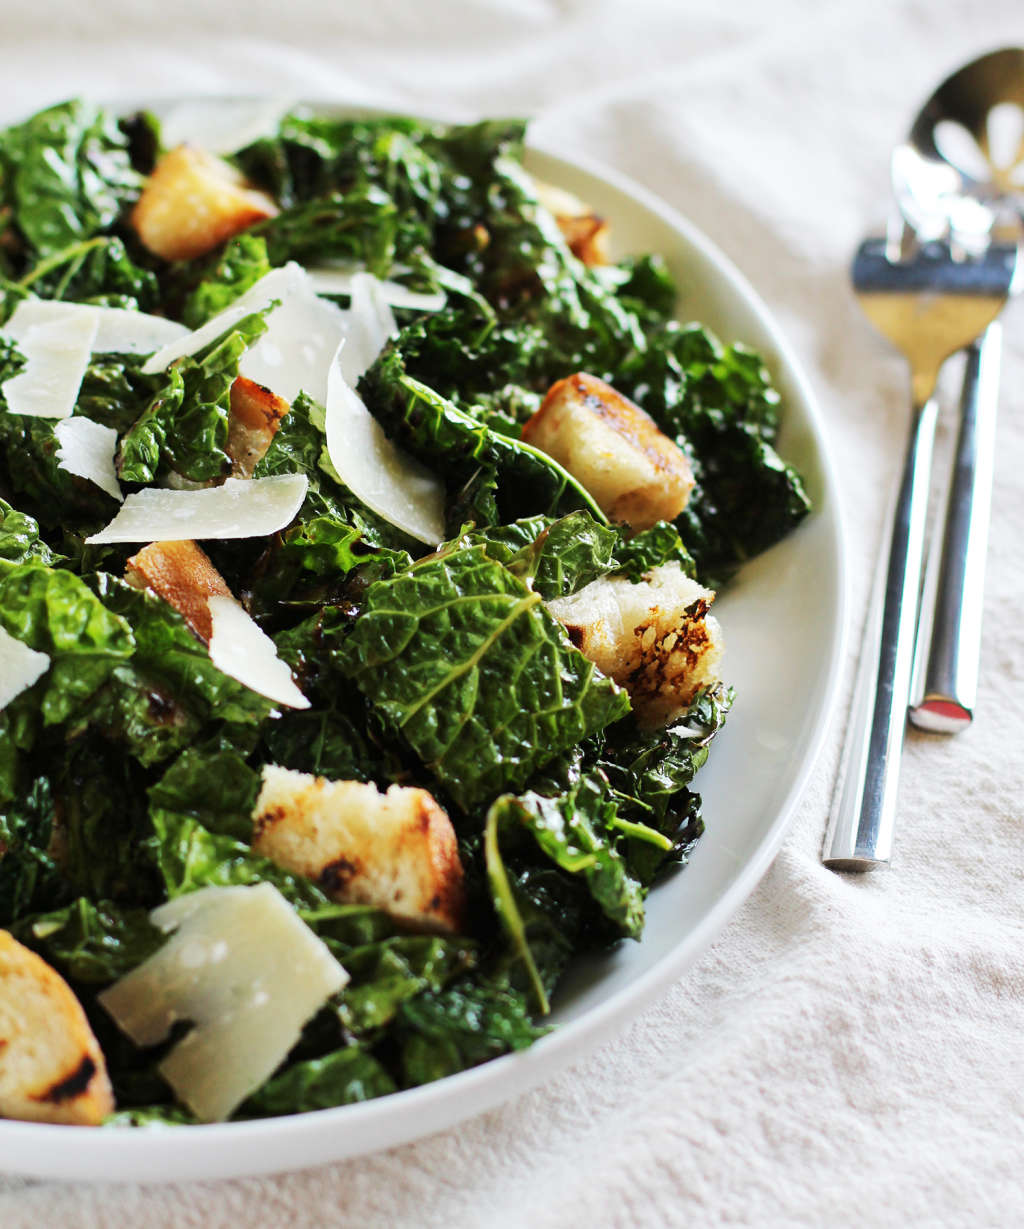 Recipe: Garlicky Grilled Kale Salad with Grilled Bread